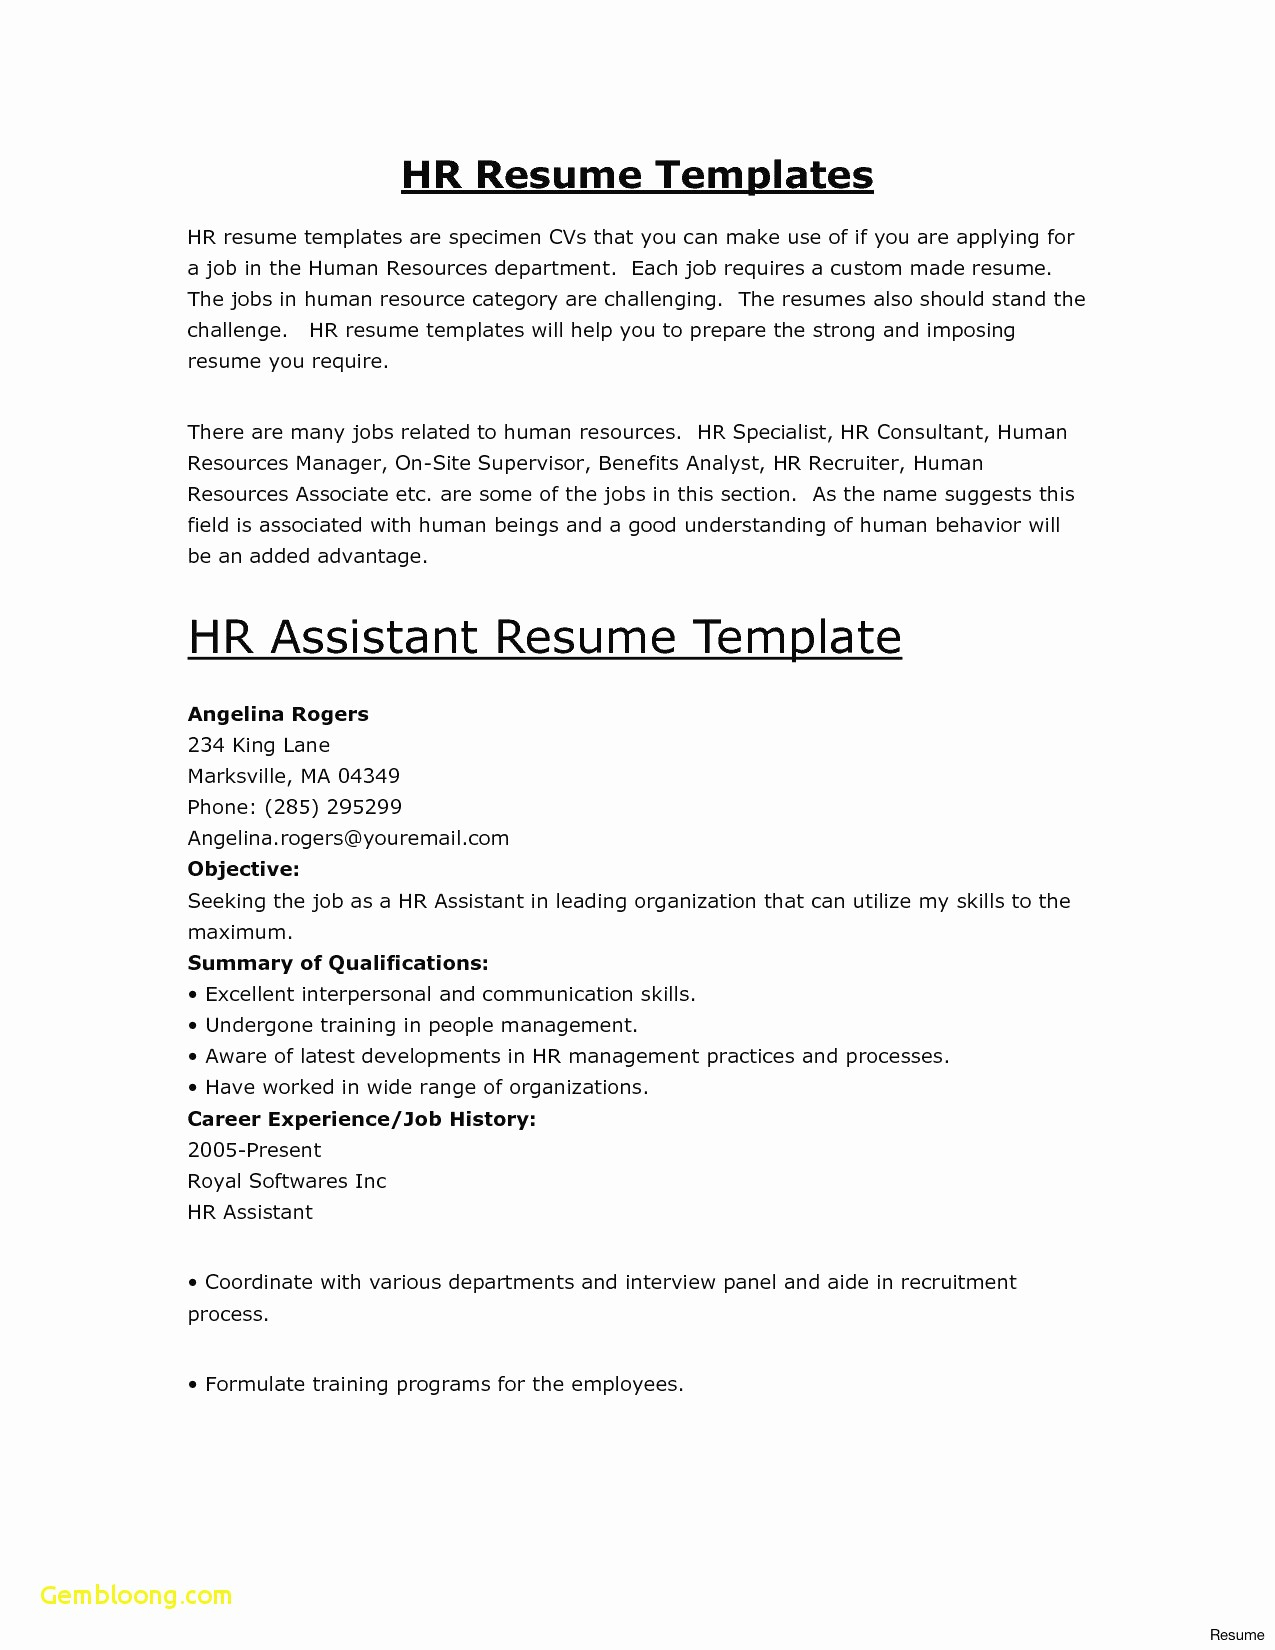 Creative Writer Resume - Creative Writer Resume Inspirational College Resume Example Writers